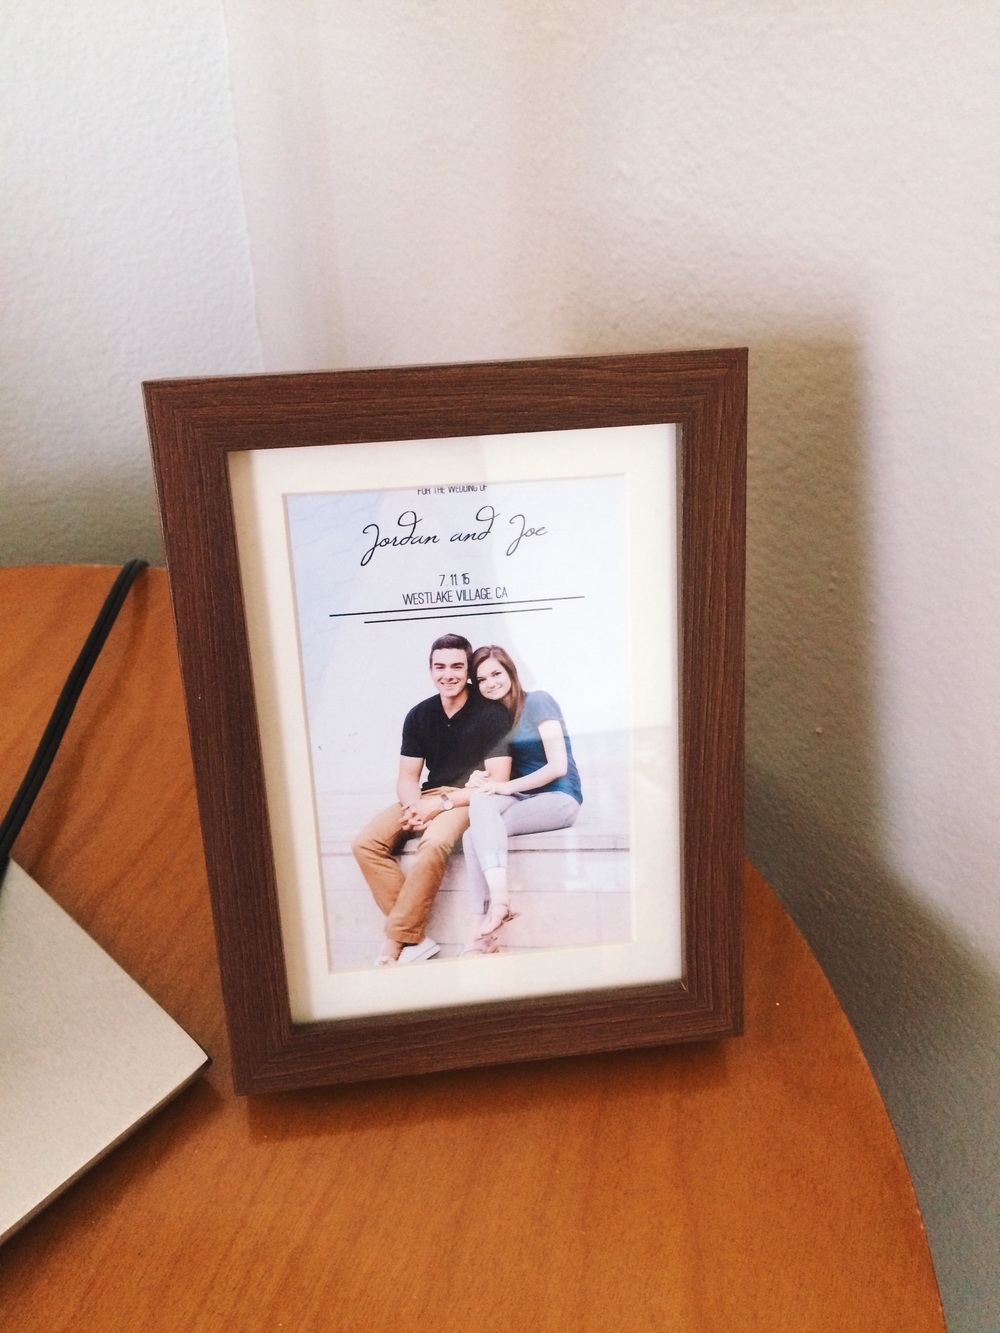 "our save the date fit almost perfectly in this frame. so i said ""good enough for me"" and now the two of us cuties are represented here."